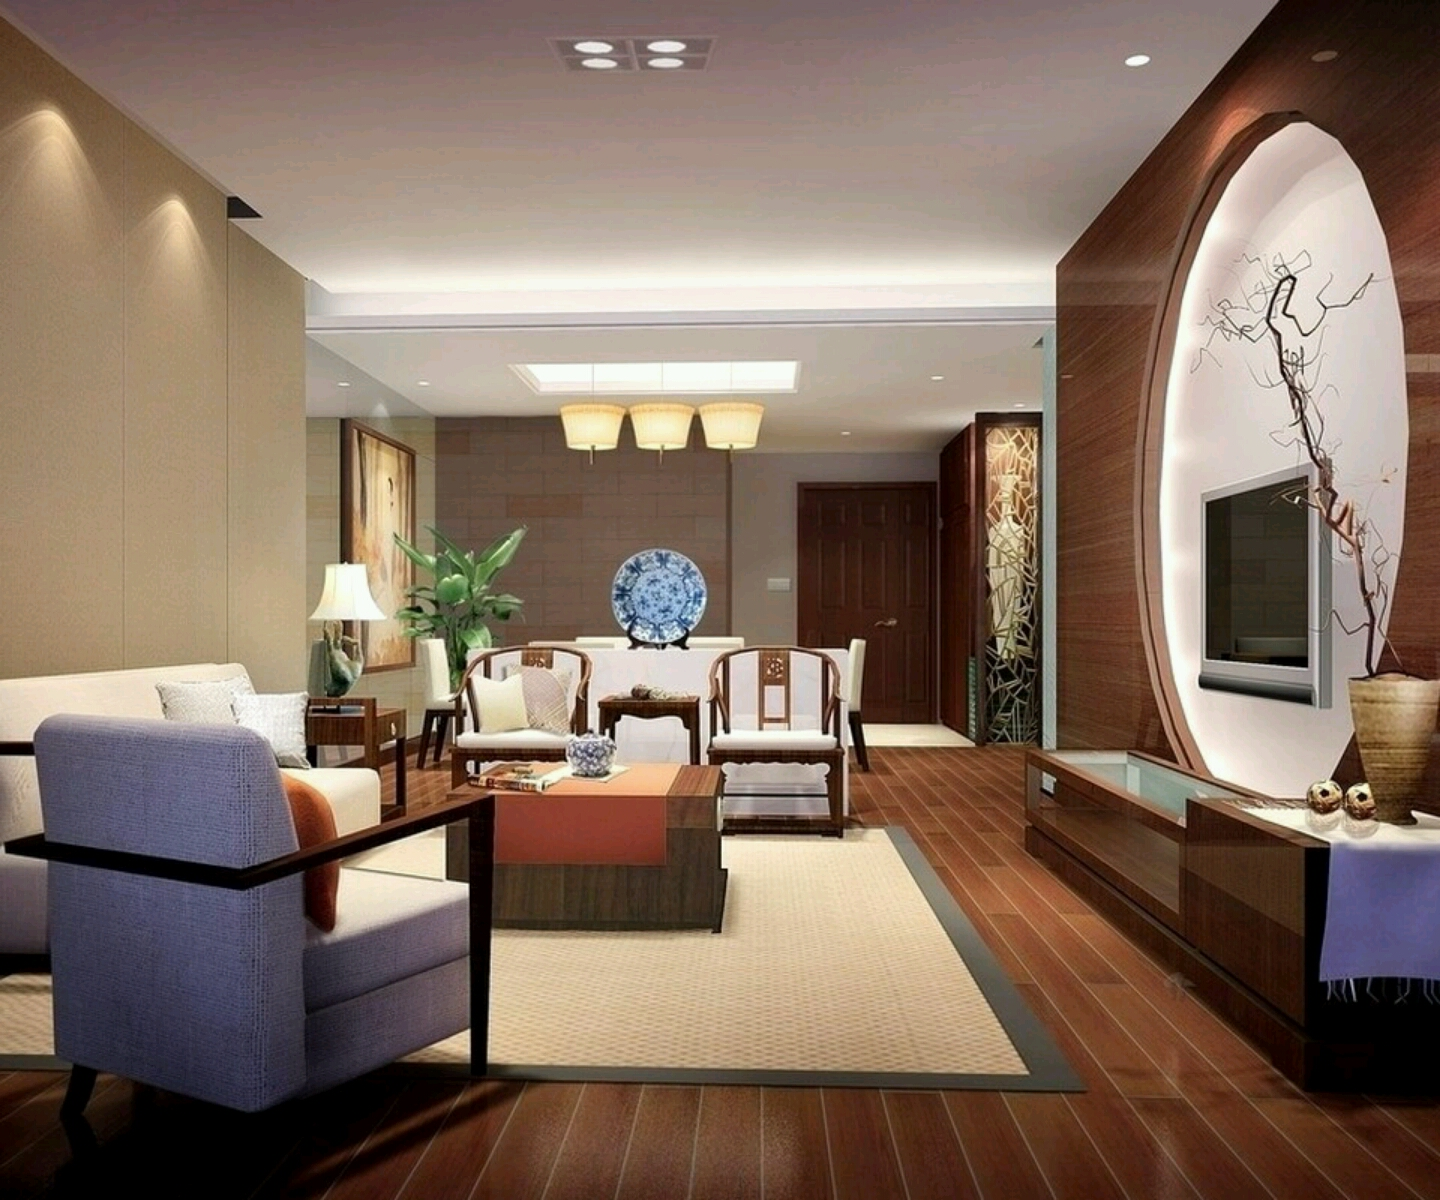 Luxury homes interior decoration living room designs ideas for House interior living room